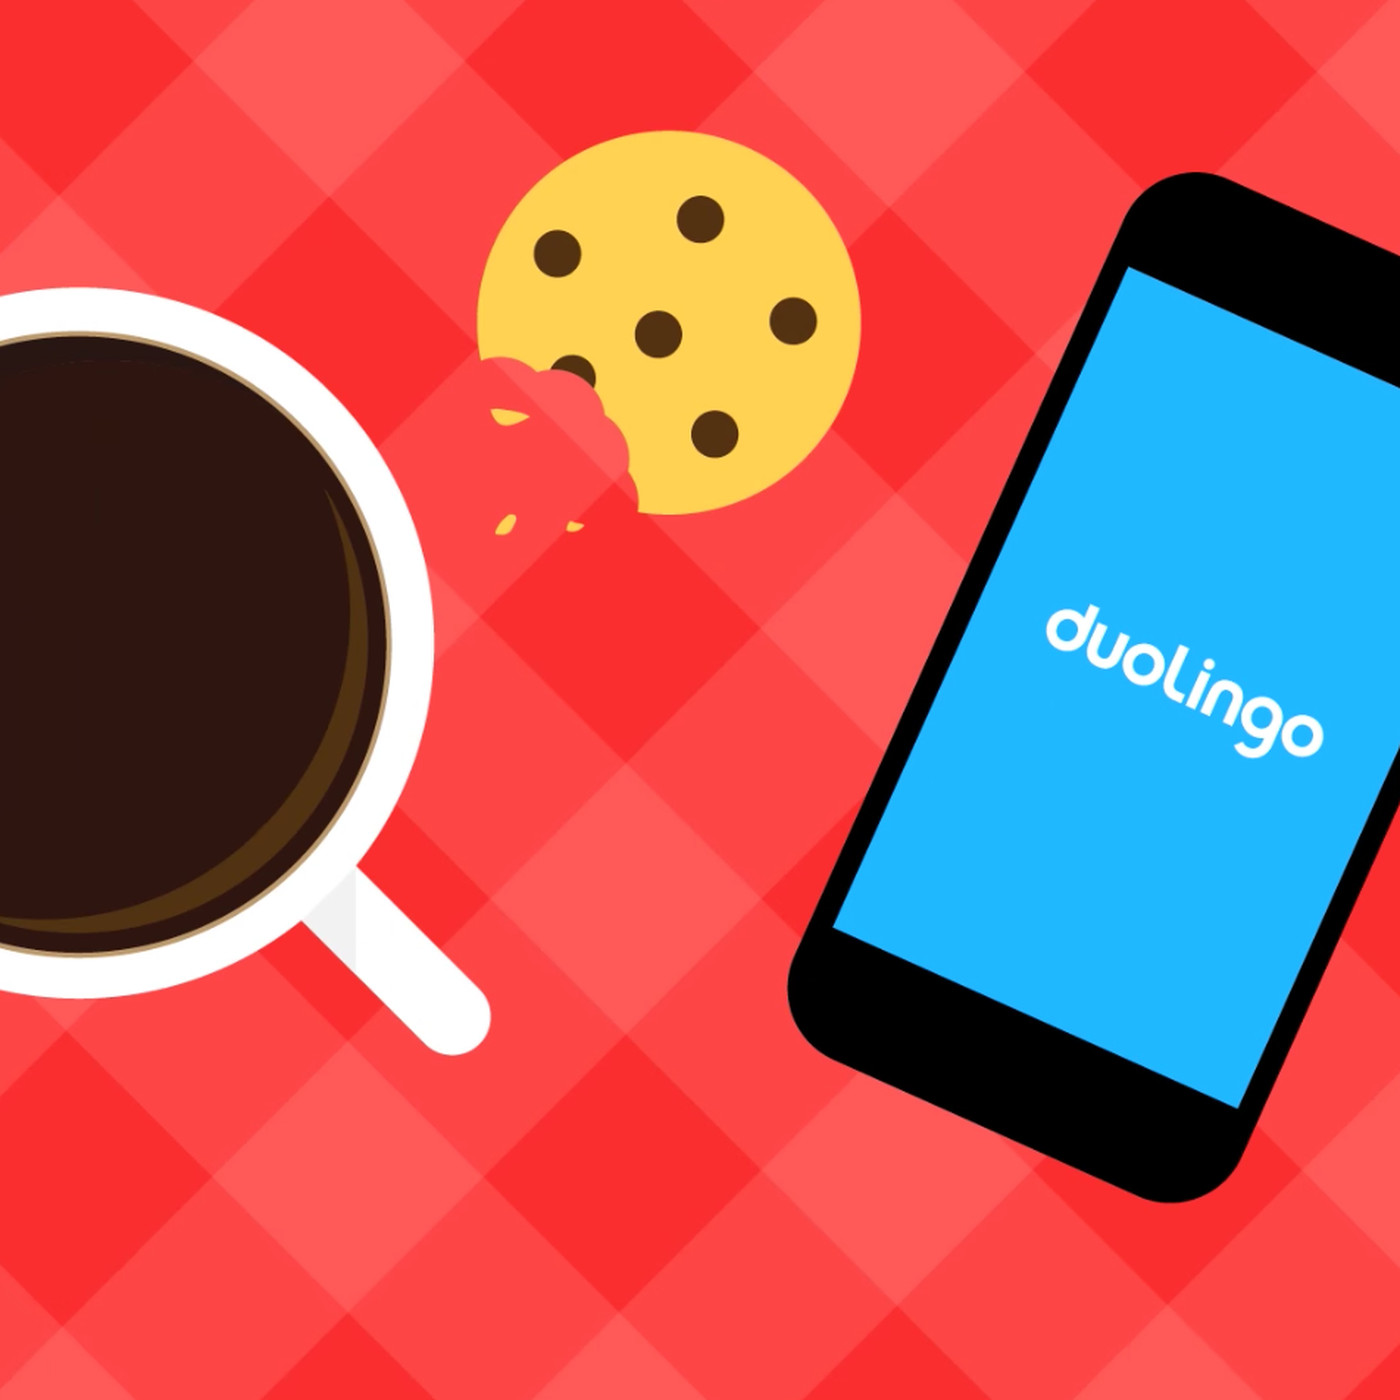 Duolingo now offers paid subscriptions for ad-free and